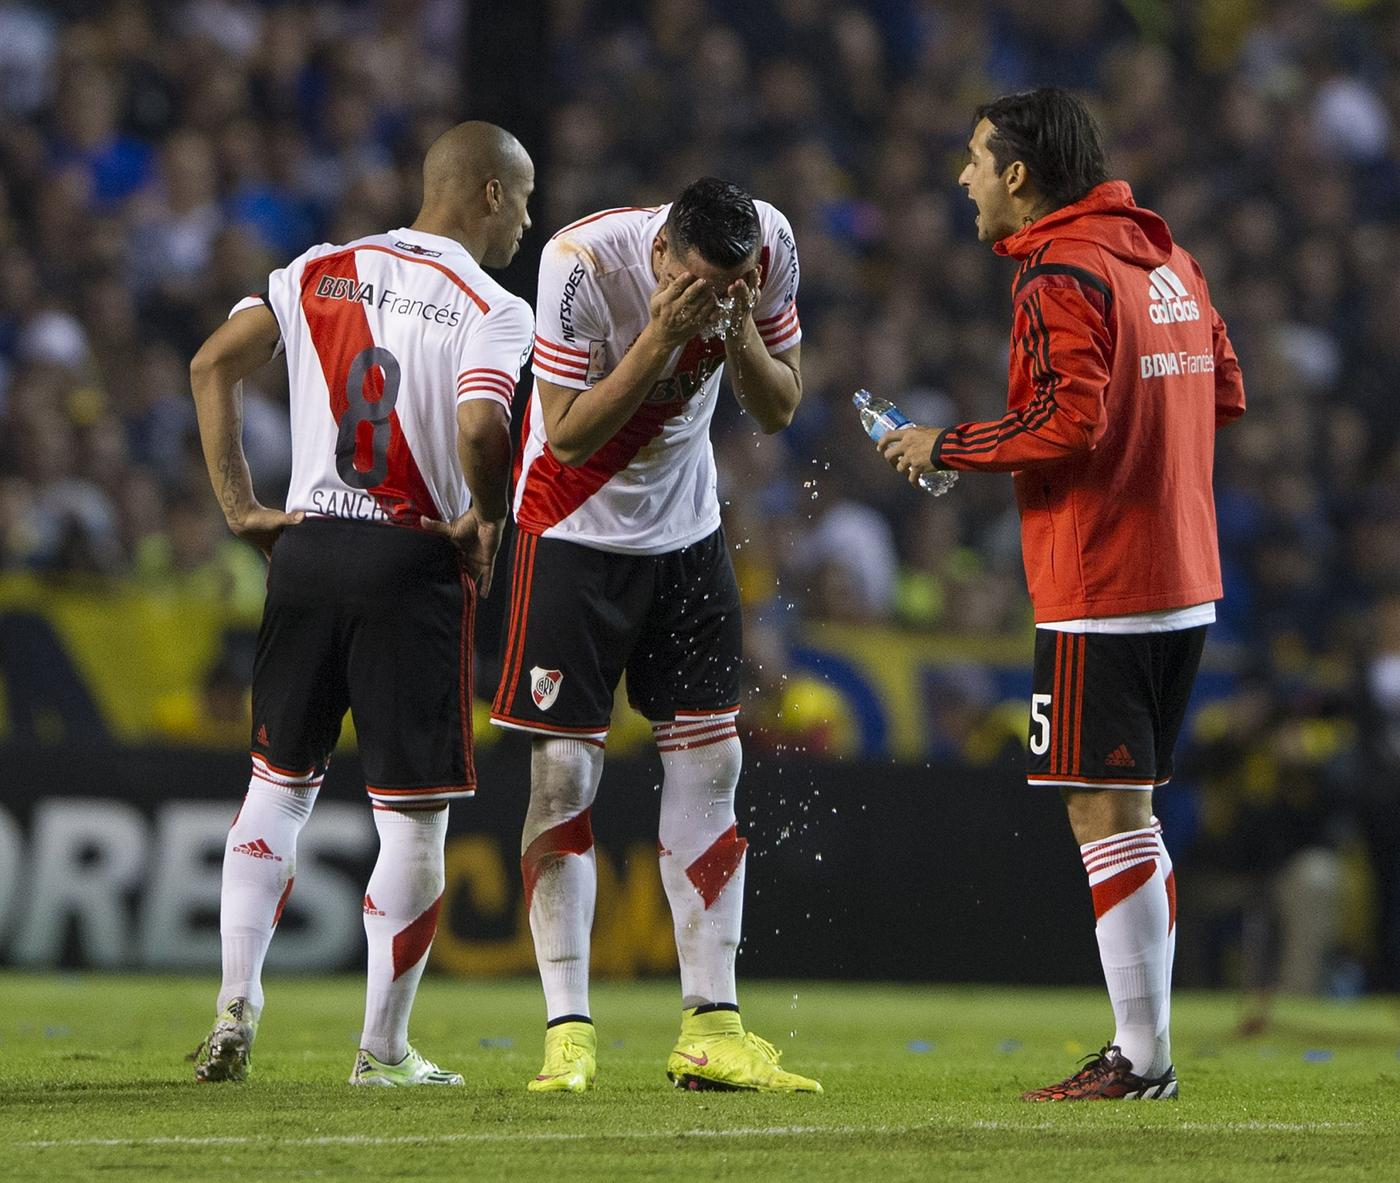 Boca Juniors v River Plate suspended 'after fan attacks players with pepper spray'